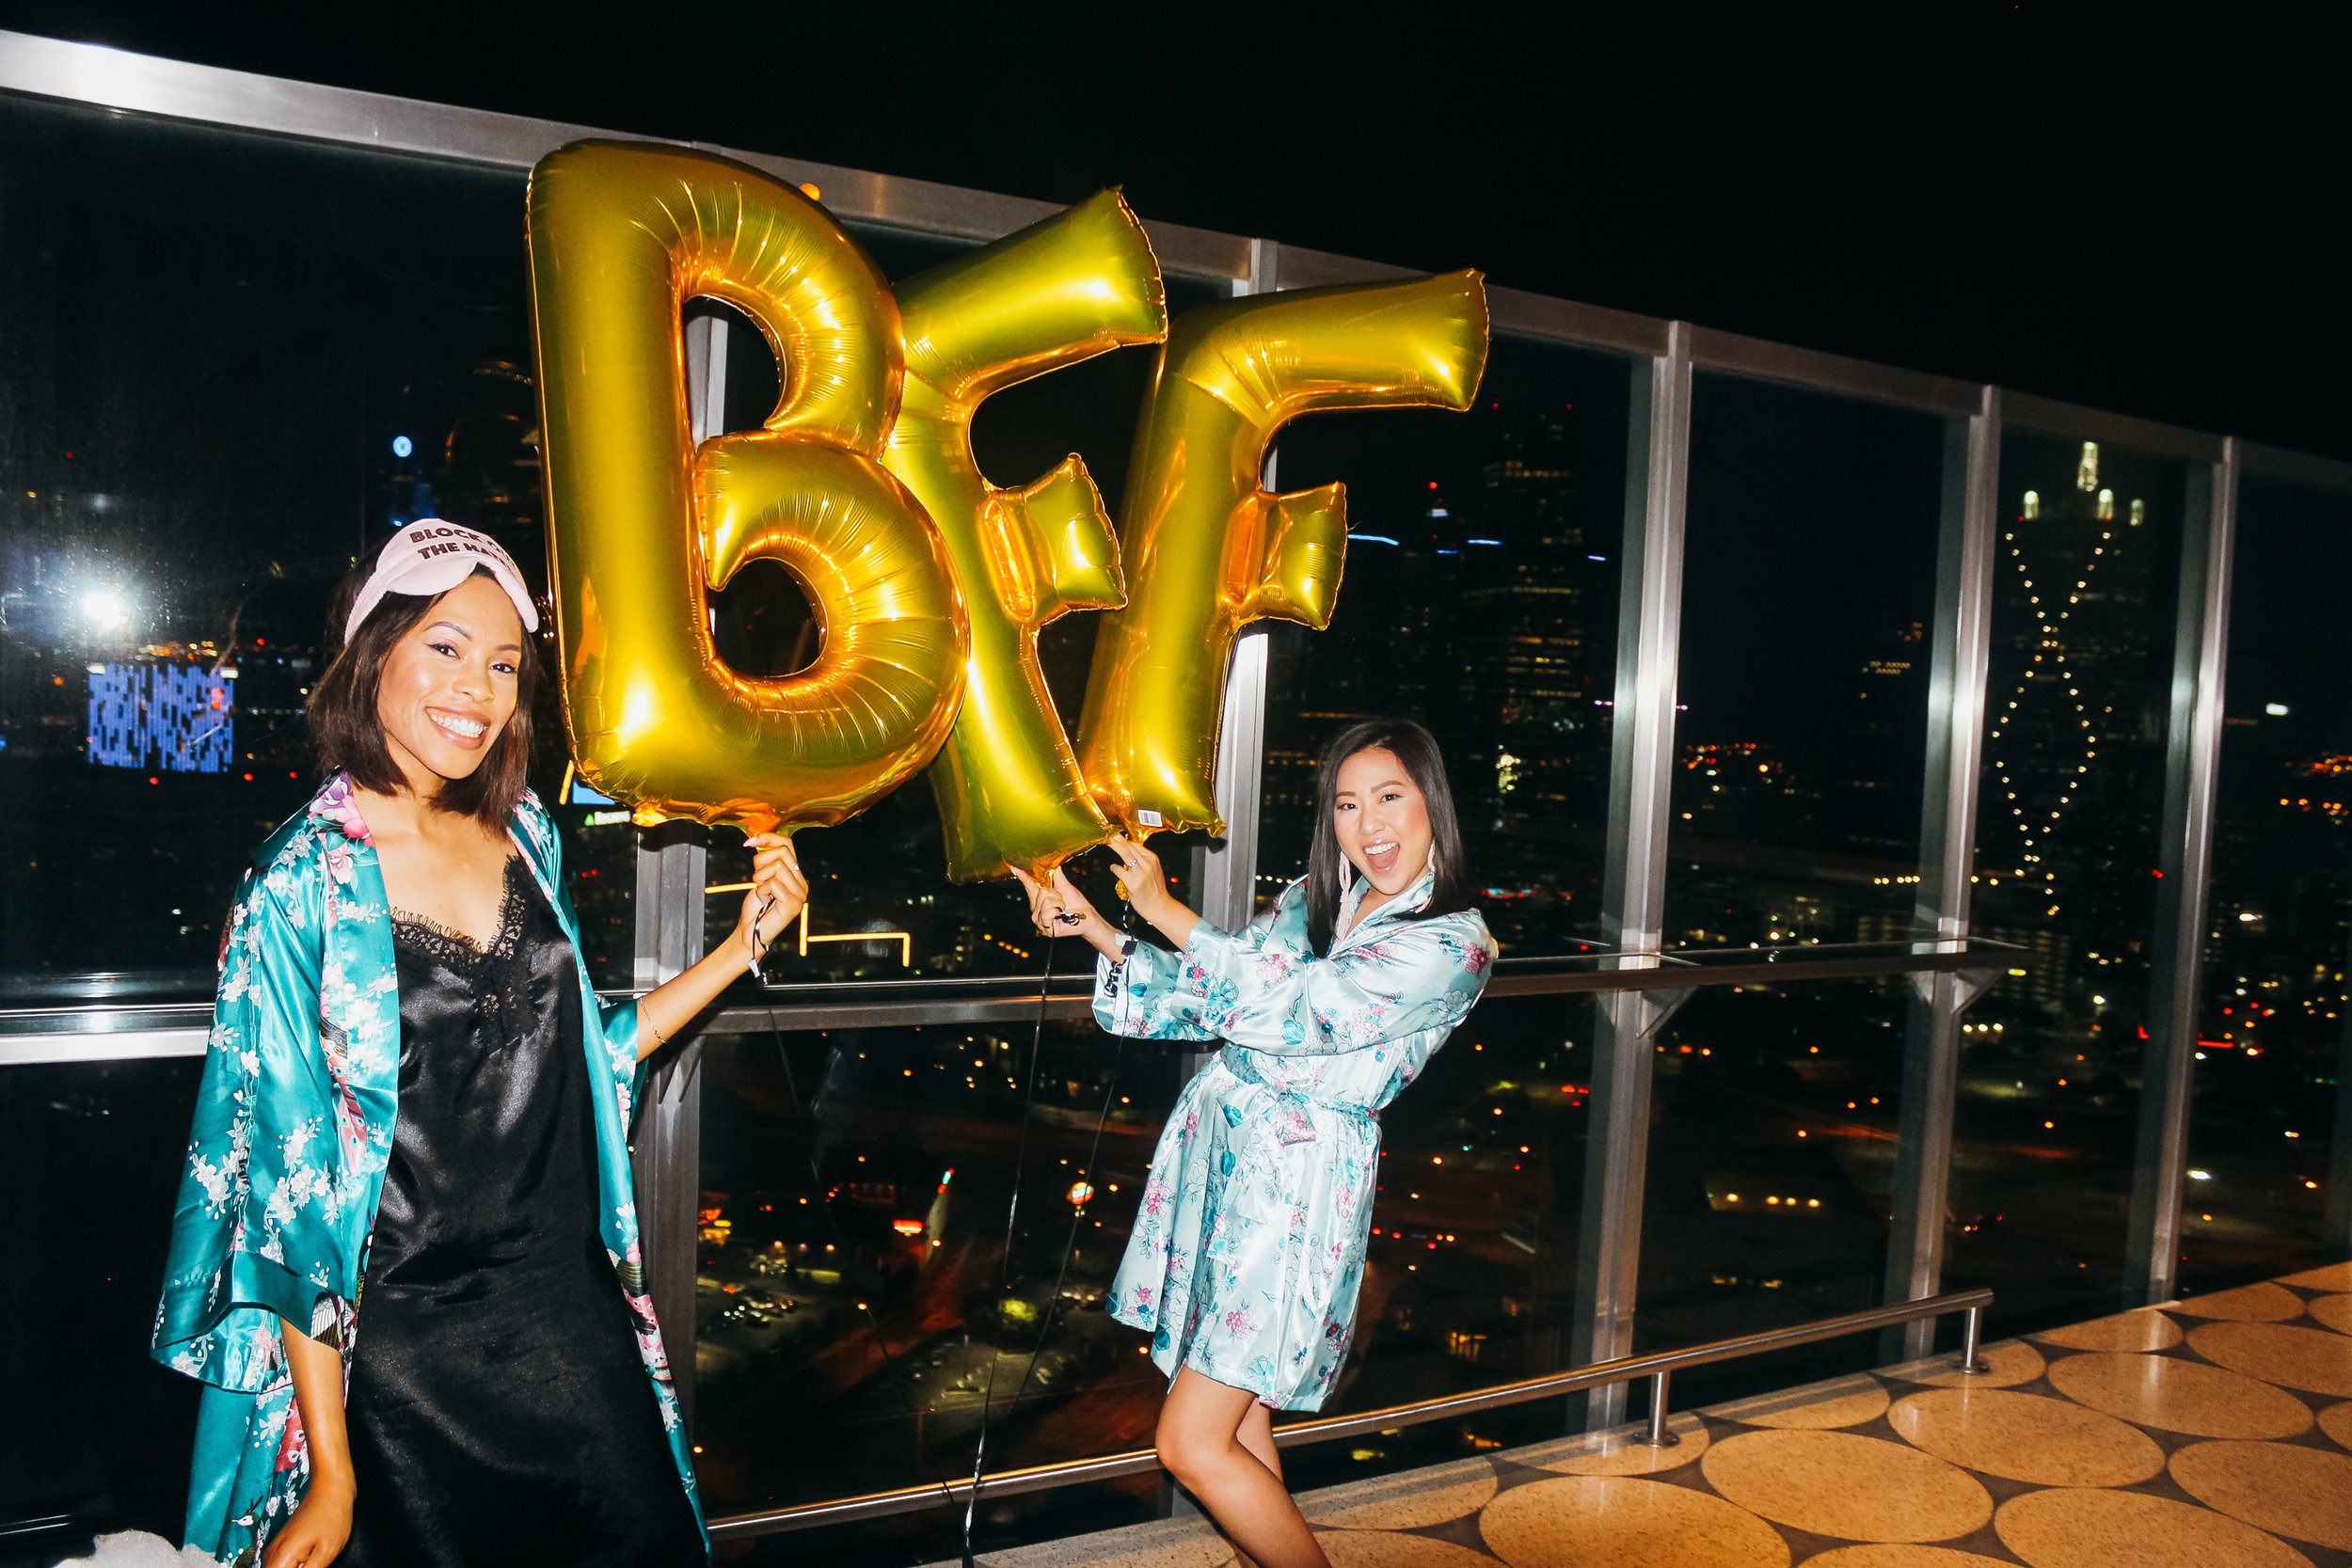 bumble-bff-dallas-launch-event-7008.jpg